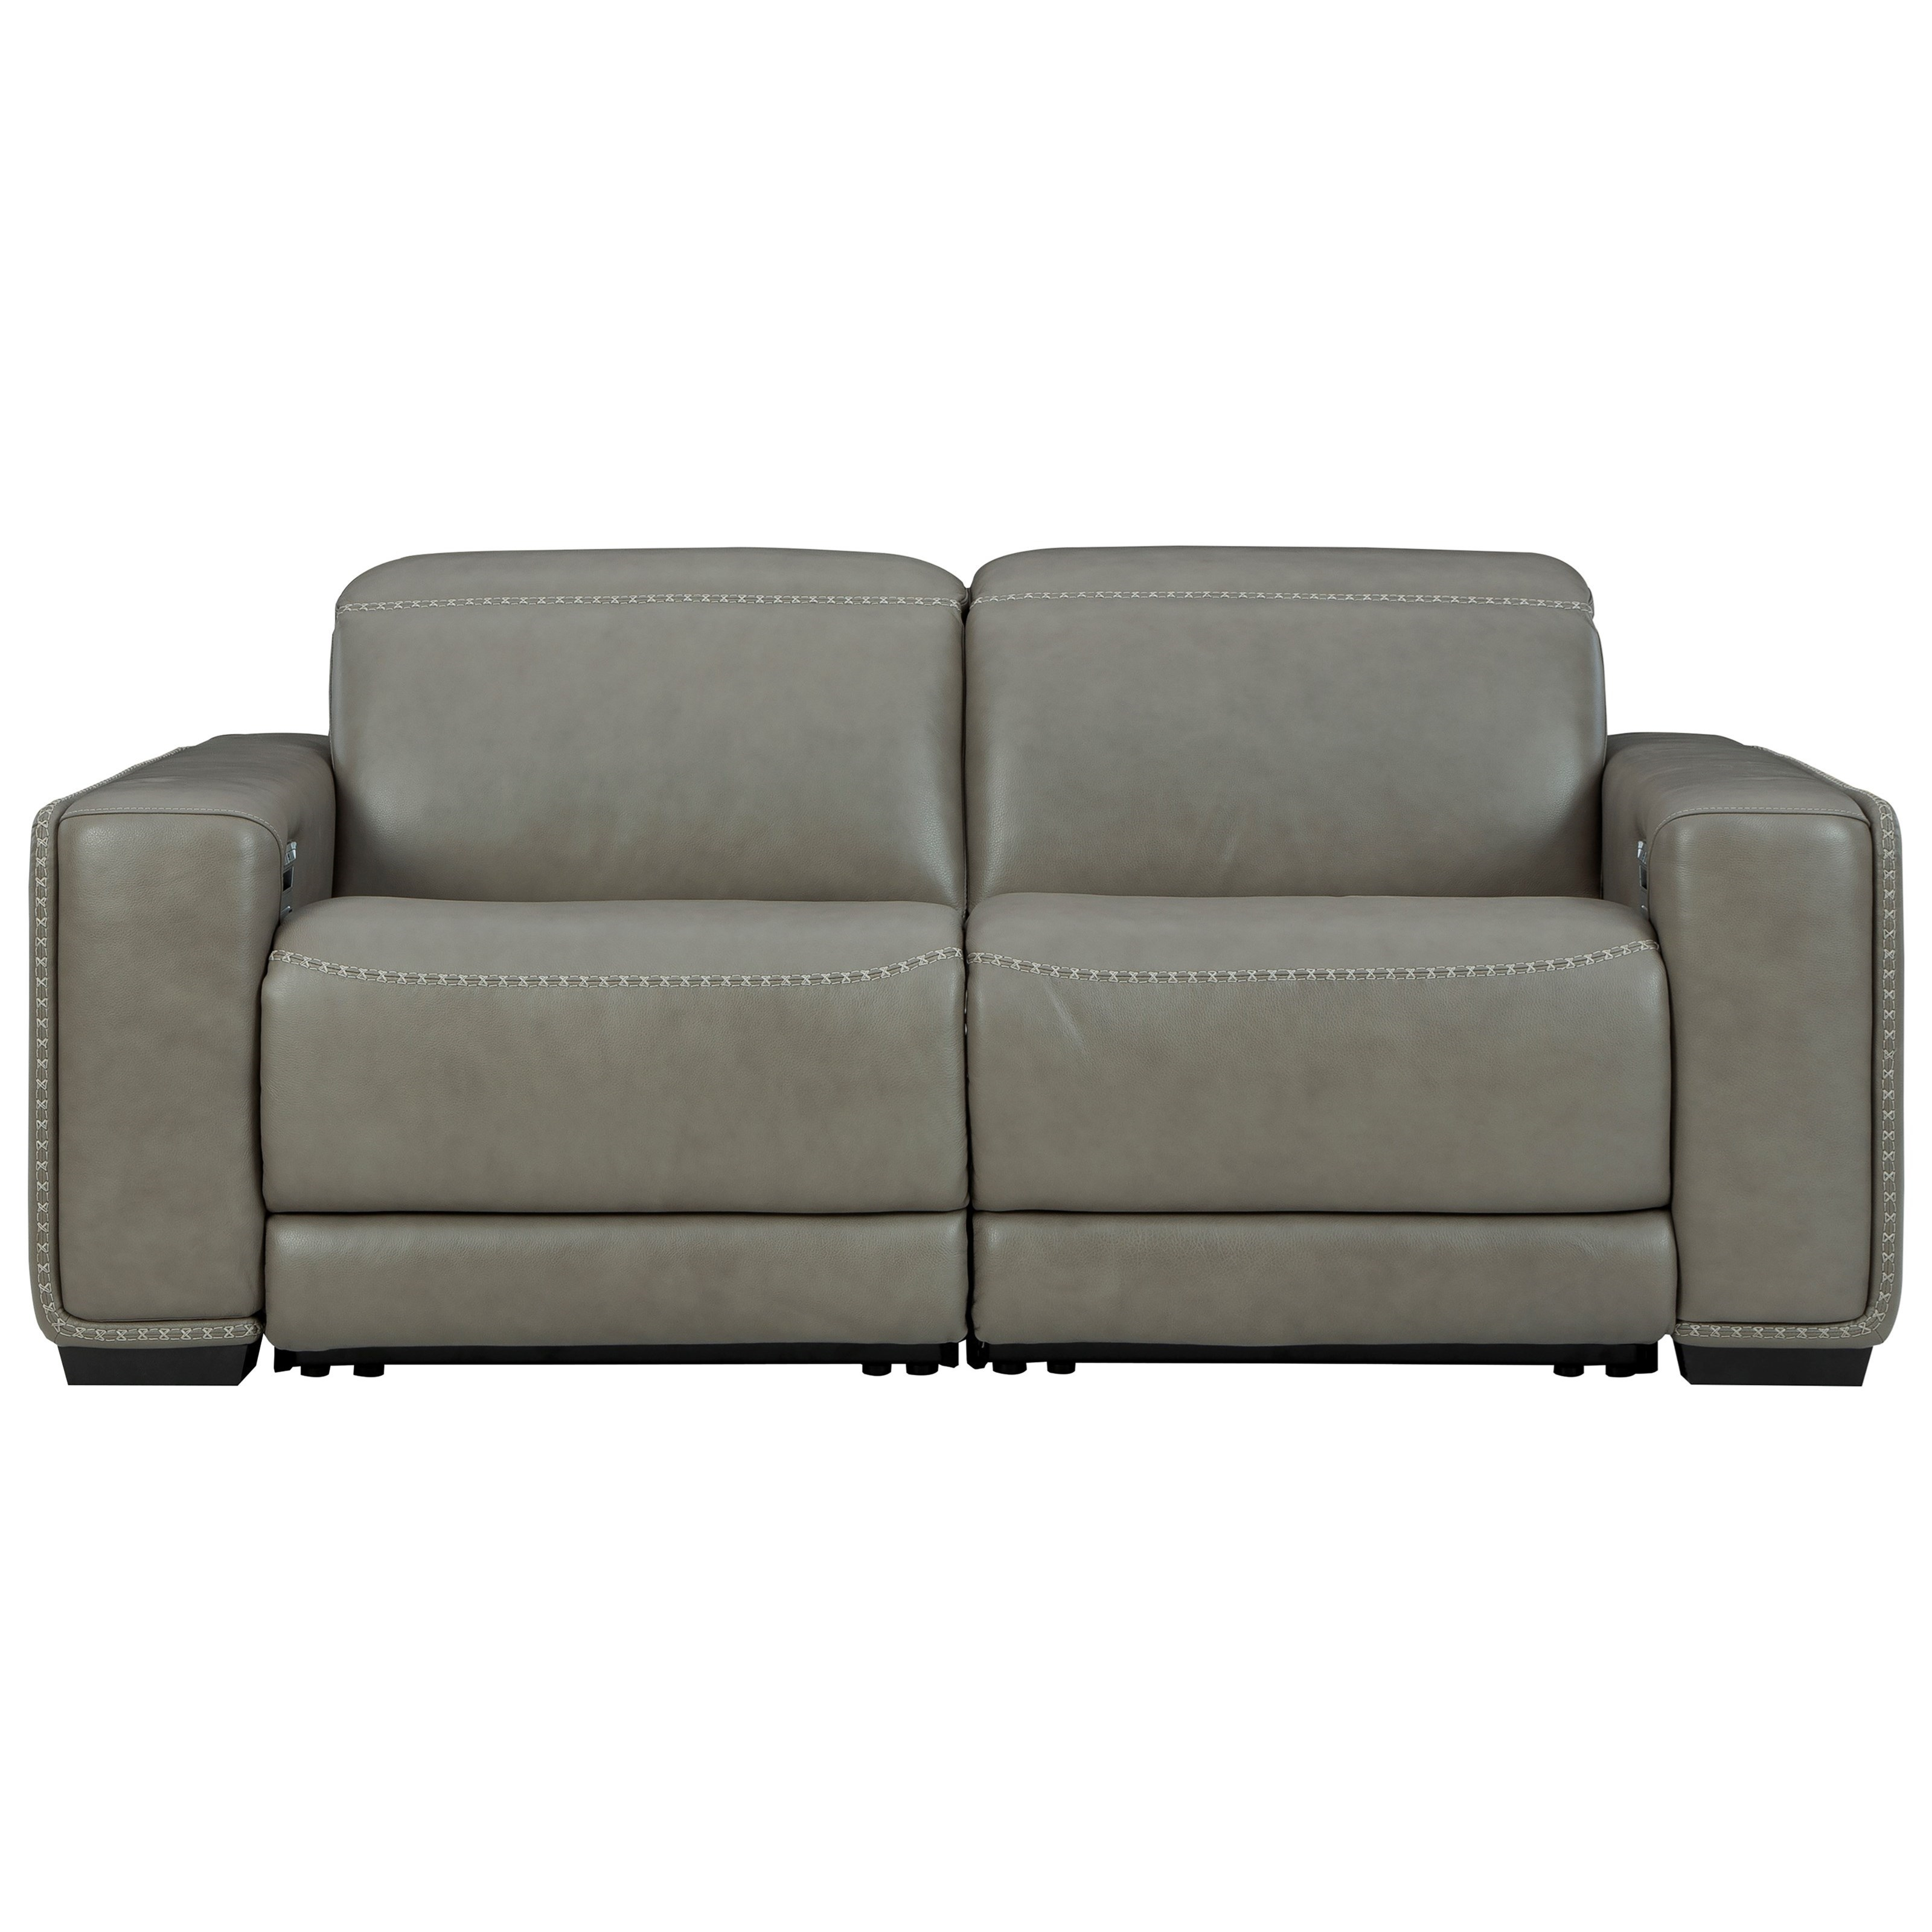 Correze Power Reclining Loveseat by Signature Design by Ashley at Prime Brothers Furniture